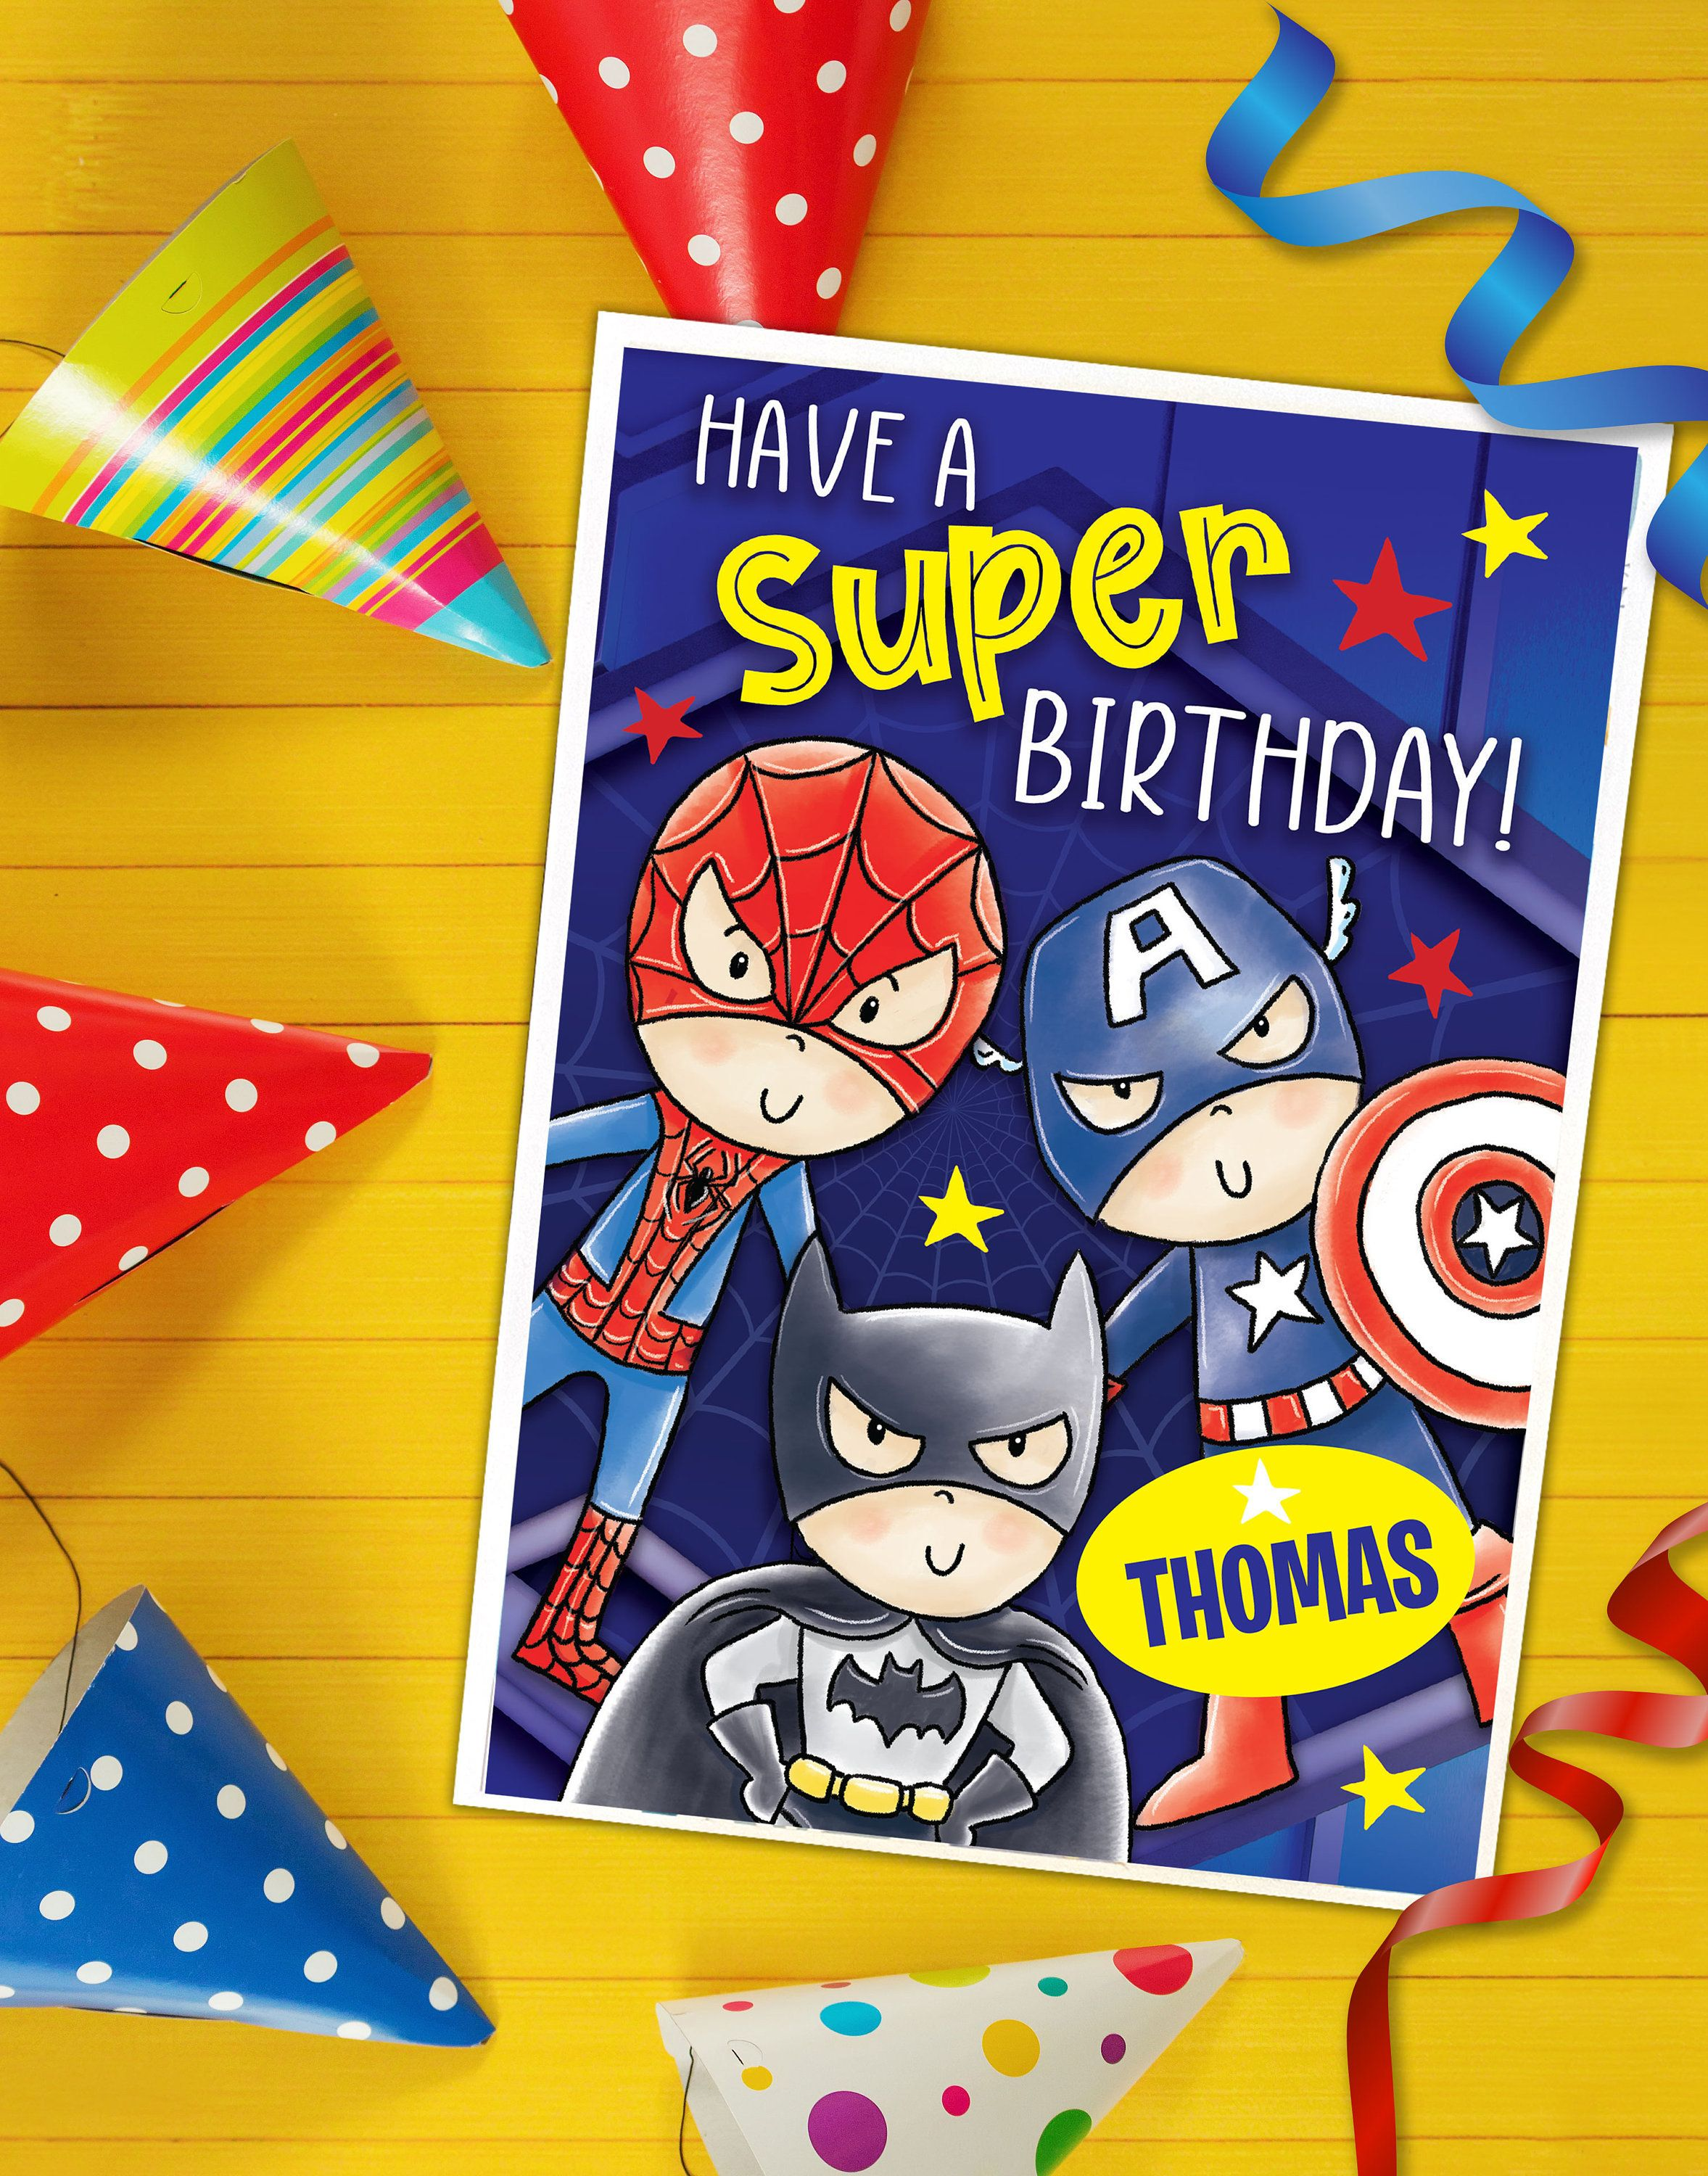 Personalised Super Hero Birthday Card With Name Superheroes Spiderman Captain America Birthday Card With Name Christmas Gift Sticker Birthday Cards For Boys